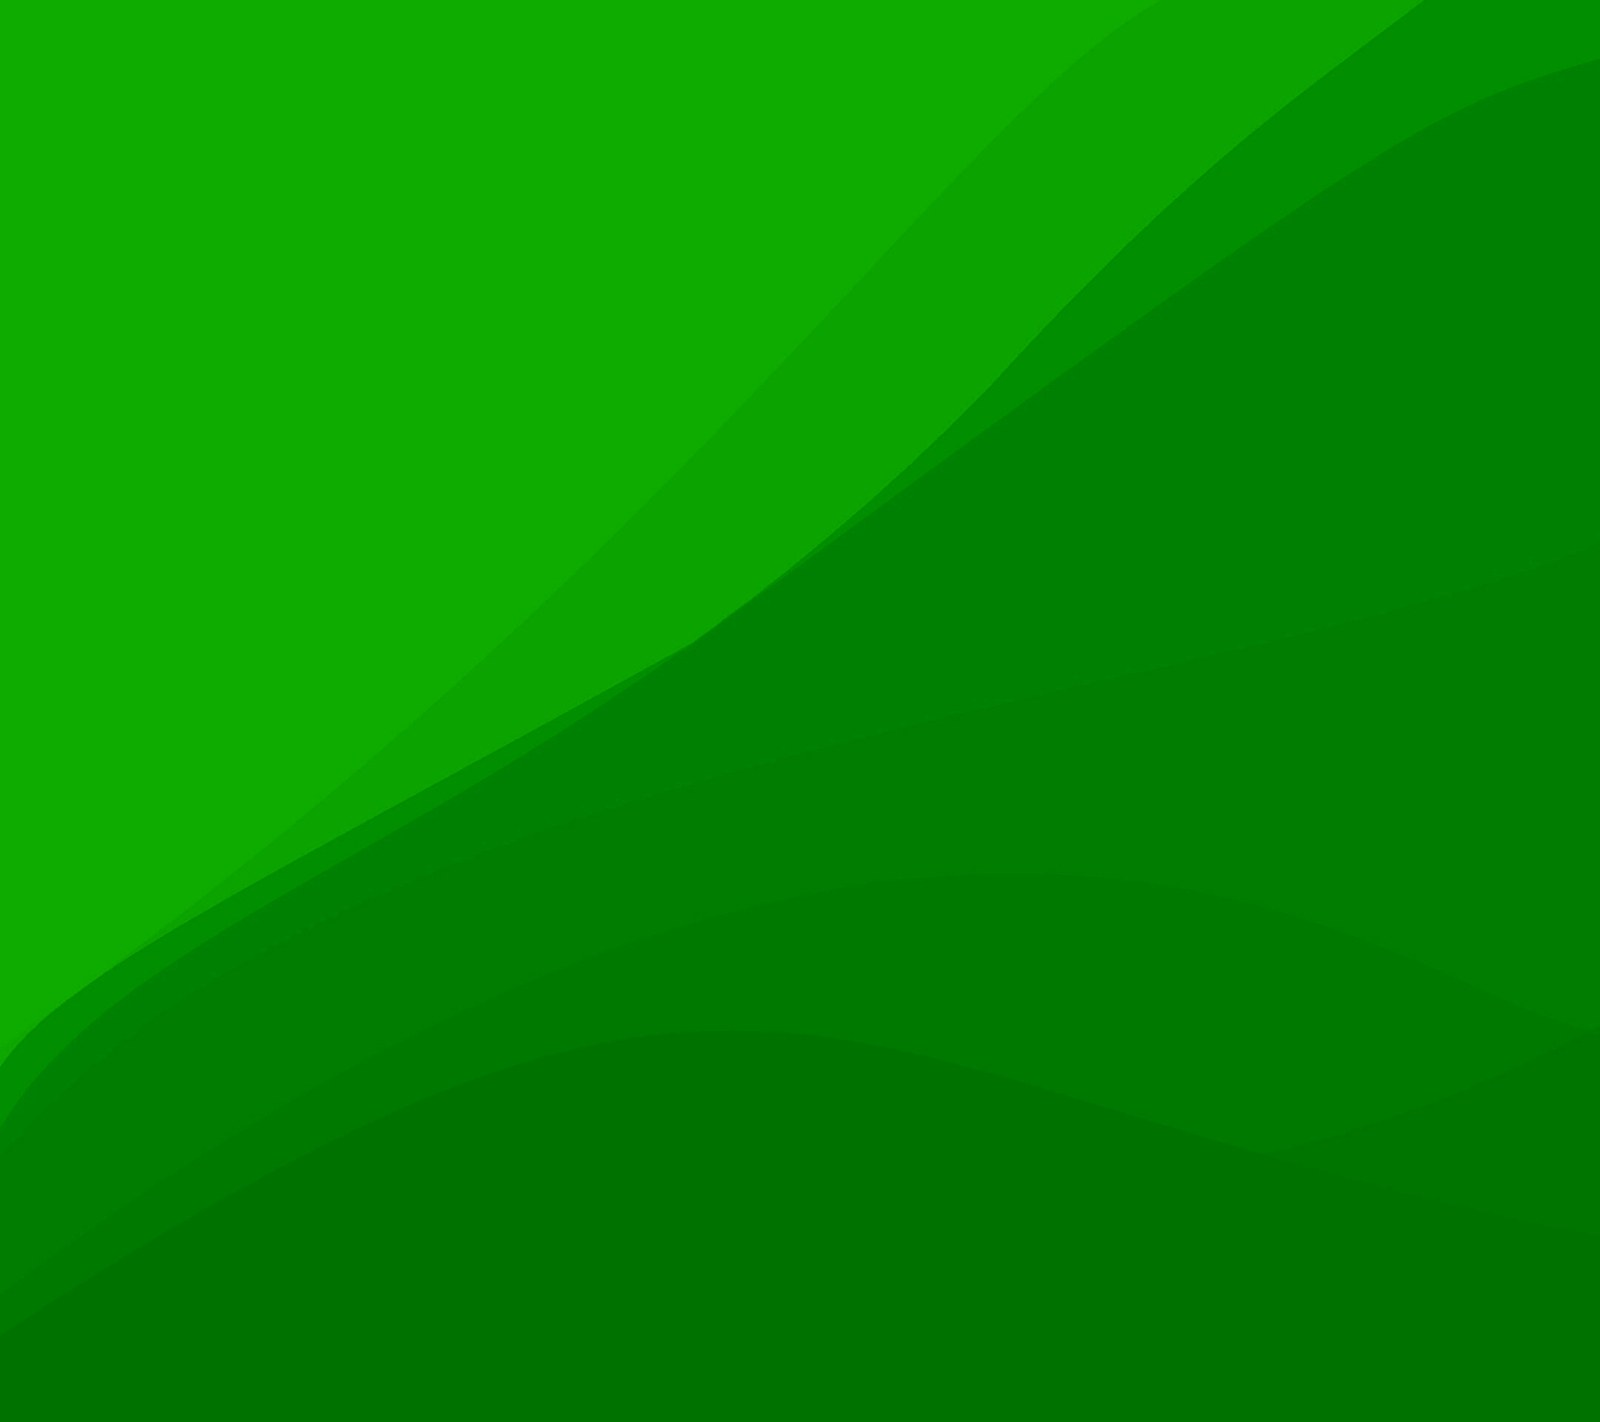 Flat Xperia Wallpapers inspired from Sony Lollipop WallpapersXperia Wallpaper Green